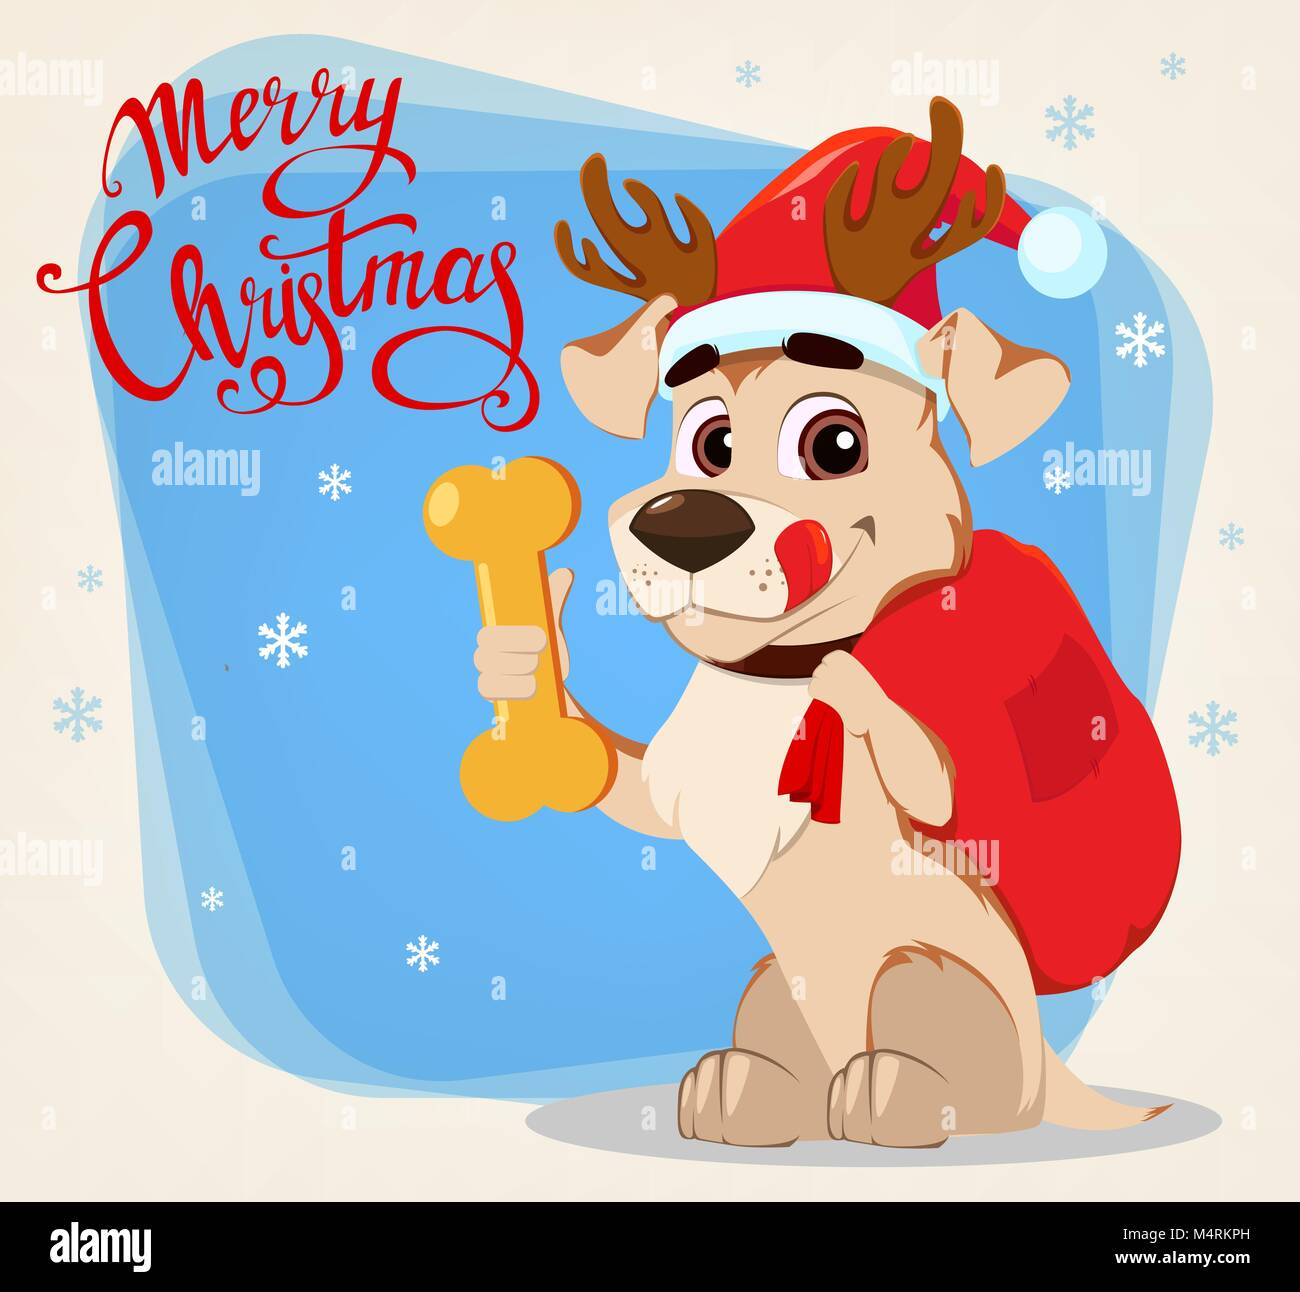 Merry Christmas Greeting Card Funny Dog Wearing Santa Claus Hat And